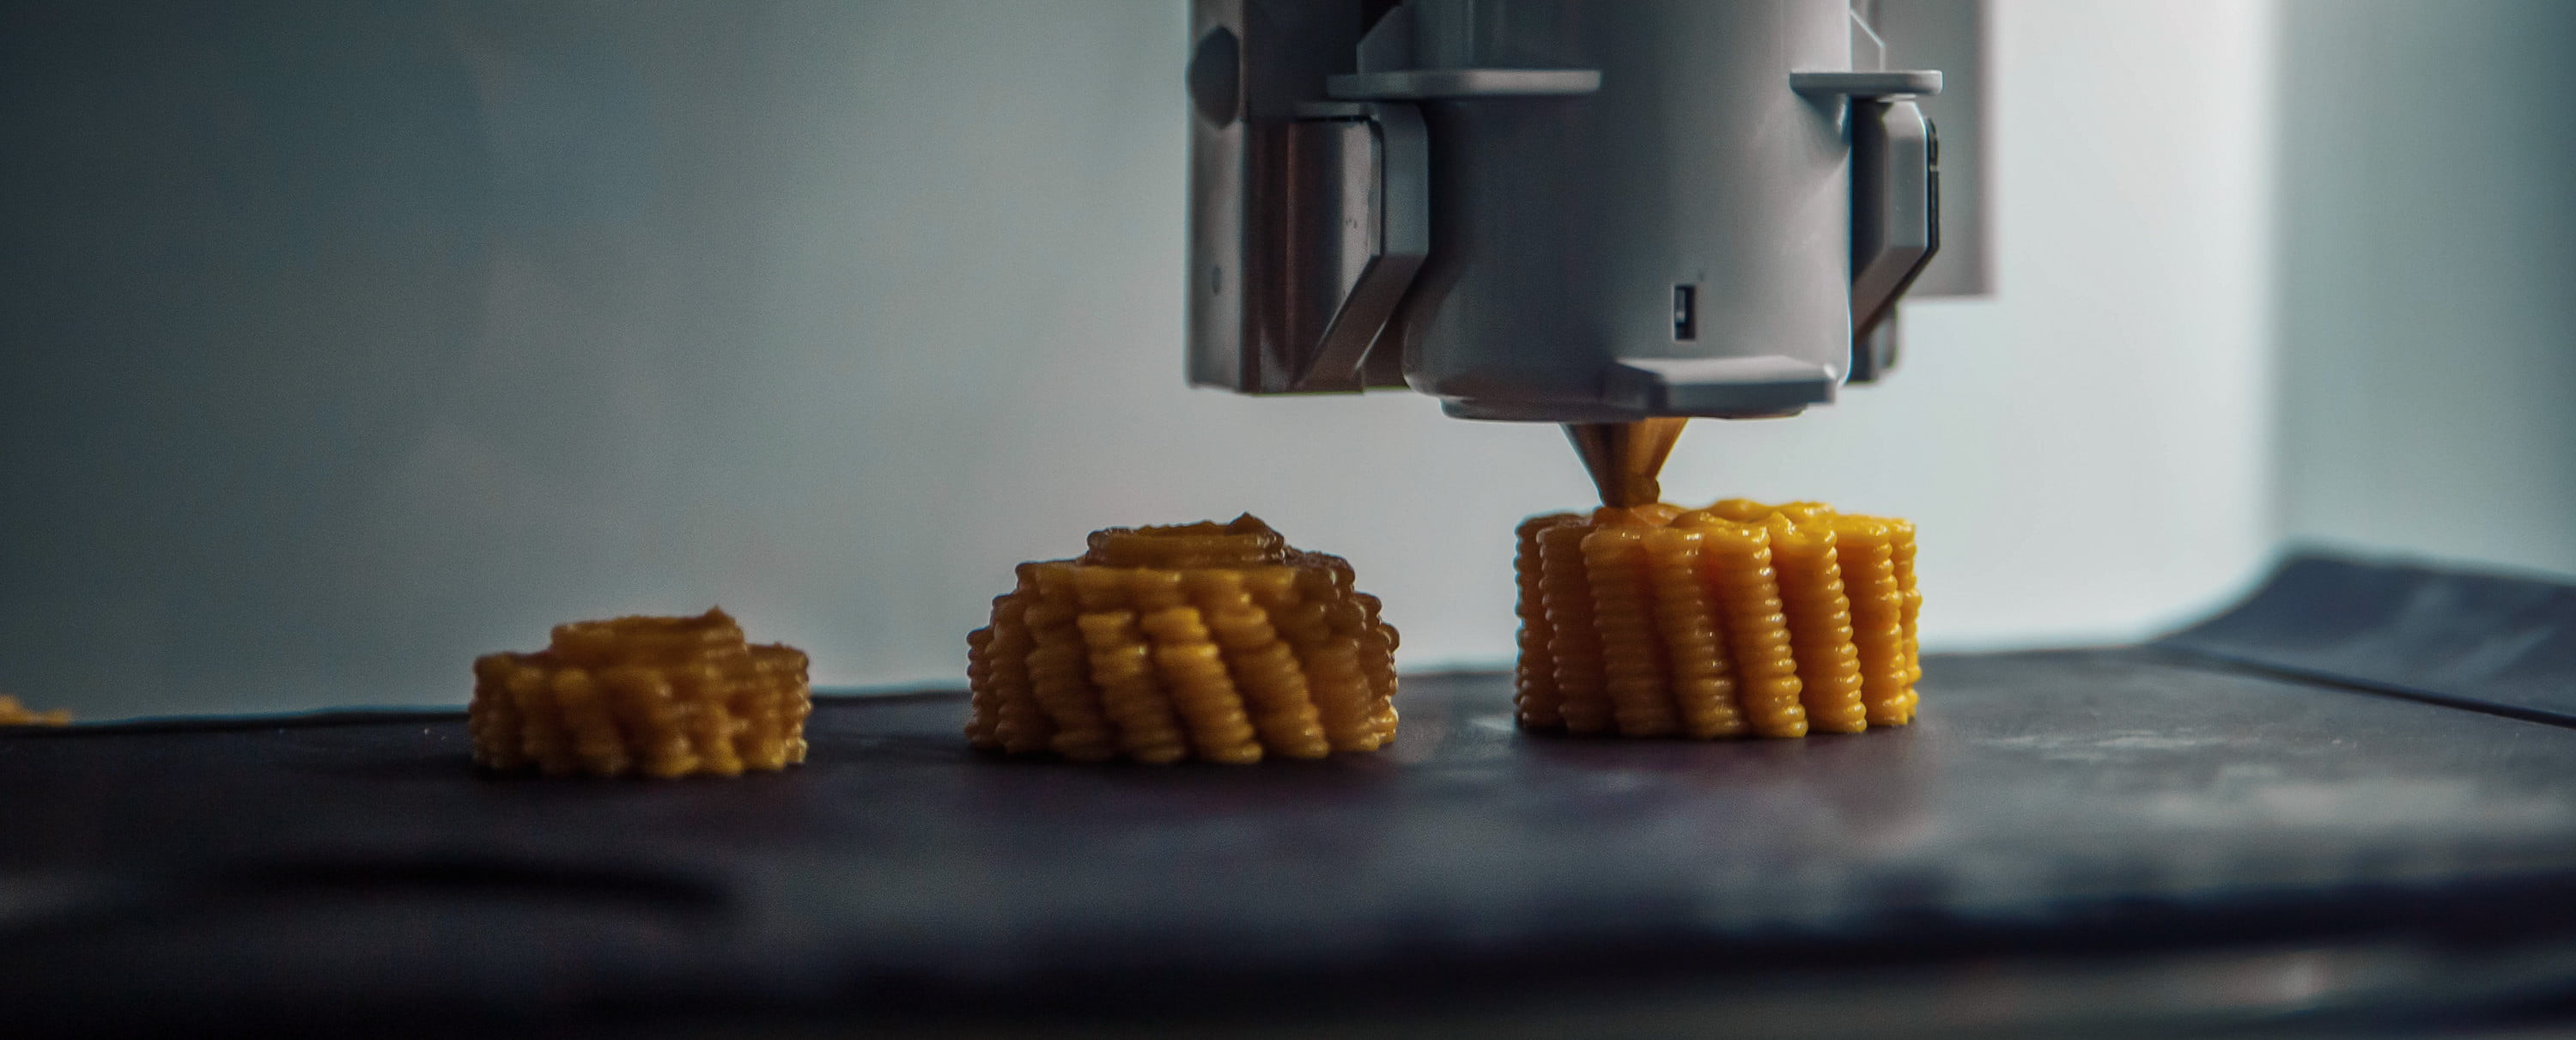 4e9ff75cea51 3D Food Printers: How They Could Change What You Eat | Digital Trends